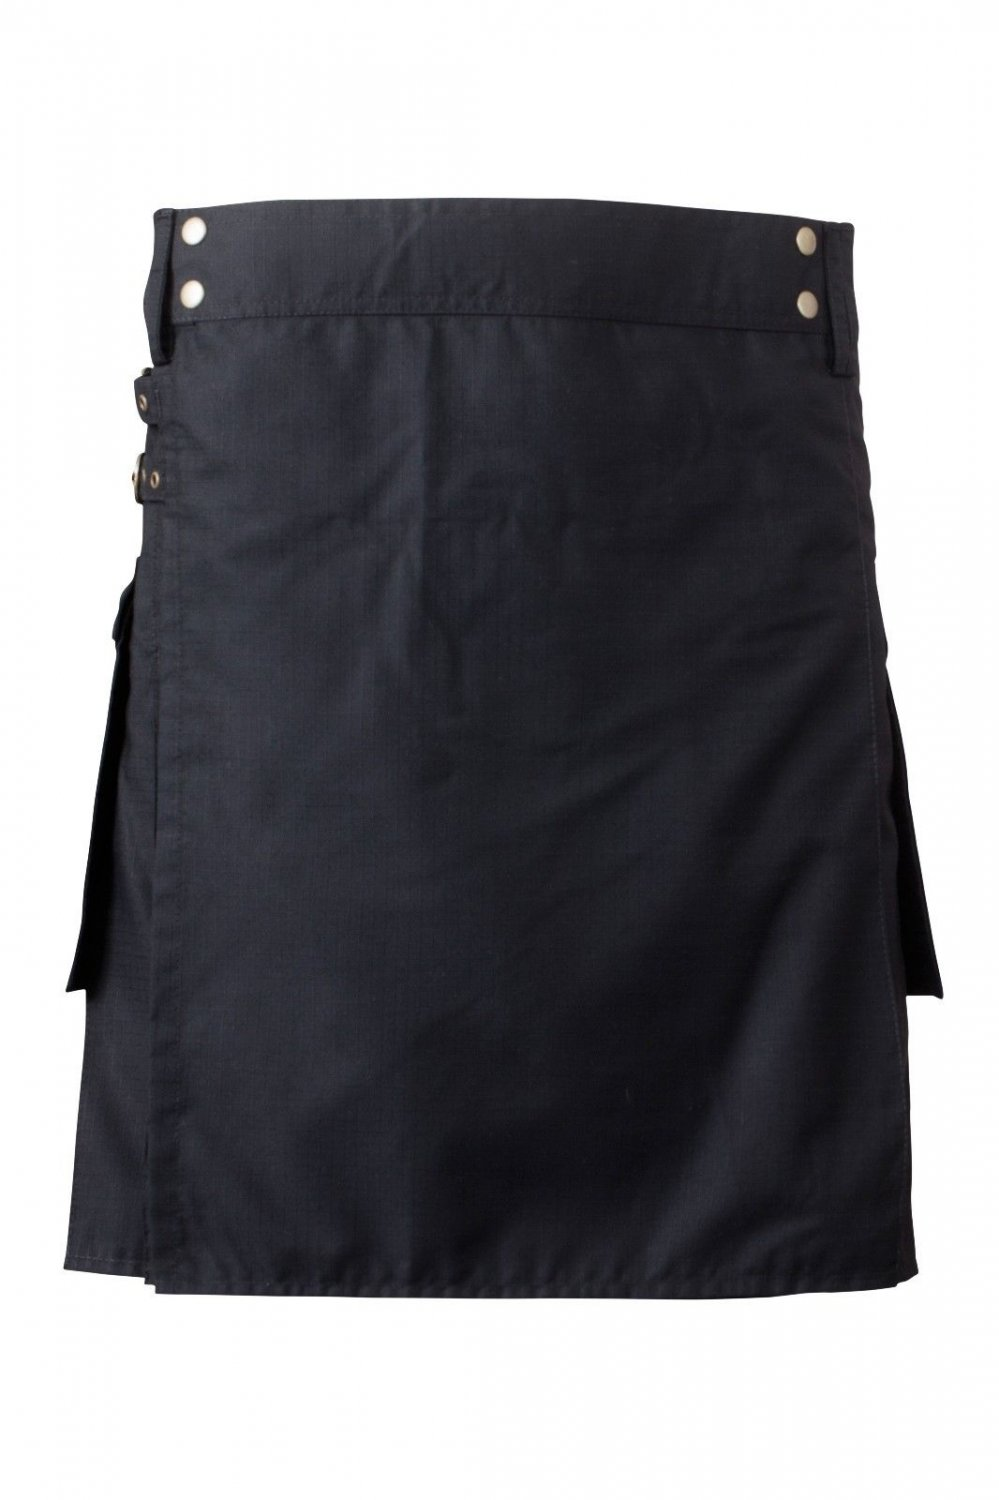 30 Waist Men's Scottish Low Price Brand New Black Cotton Utility Kilt, Fine Quality 100% Cotton